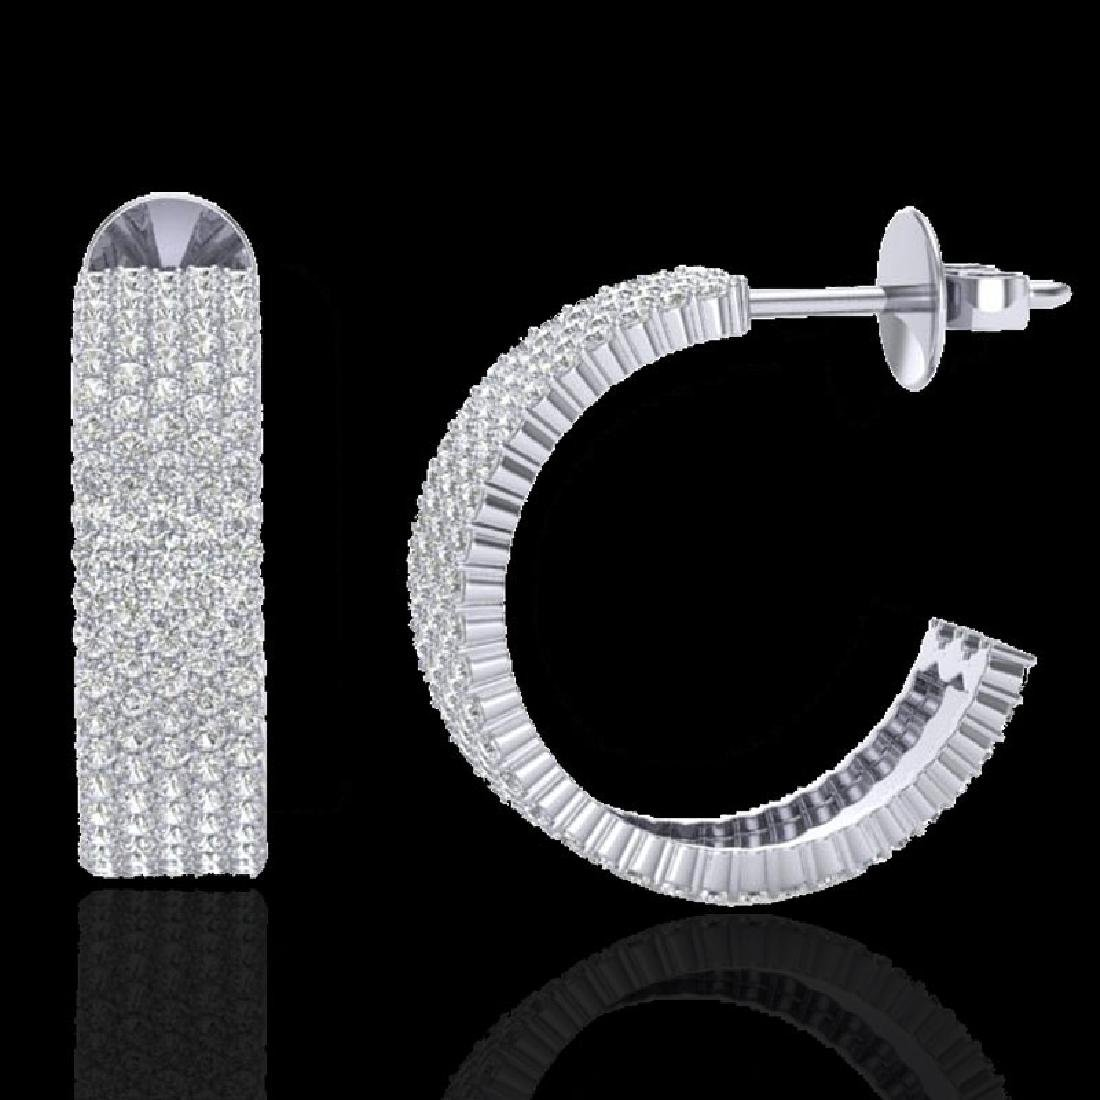 4.50 CTW Micro Pave VS/SI Diamond Earrings 14K White - 2